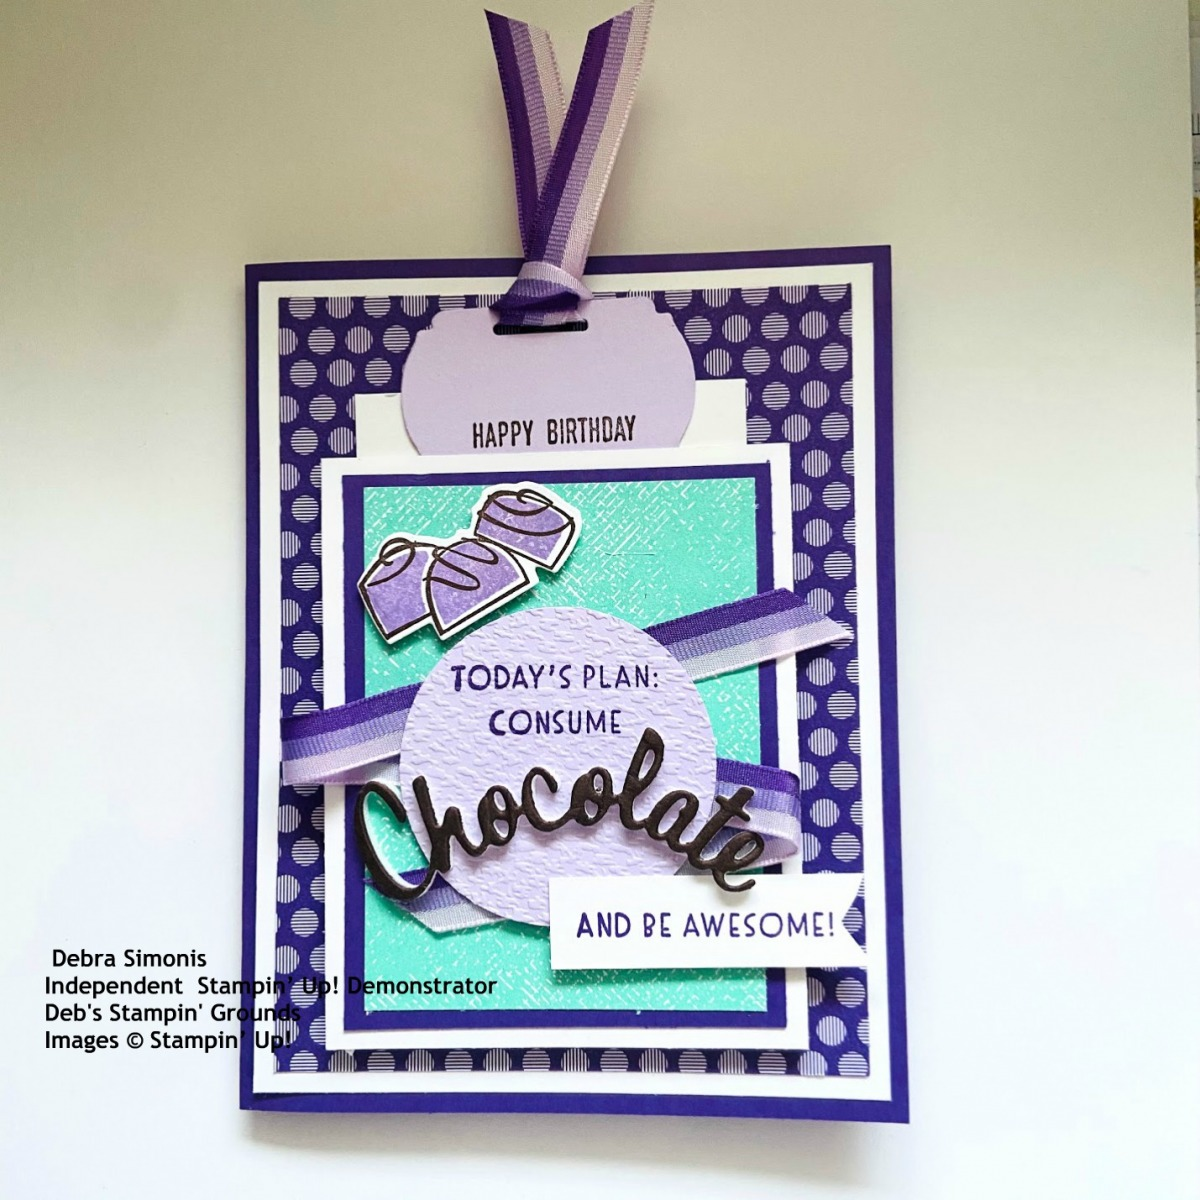 Stampin-Up-Nothings-Better-Than-Itty-Bitty-Greetings-Love-You-More-Than-Dies-Label-Me-Fancy-Punch-Birthday-Card-with-tag2-Debra-Simonis-Stampinup